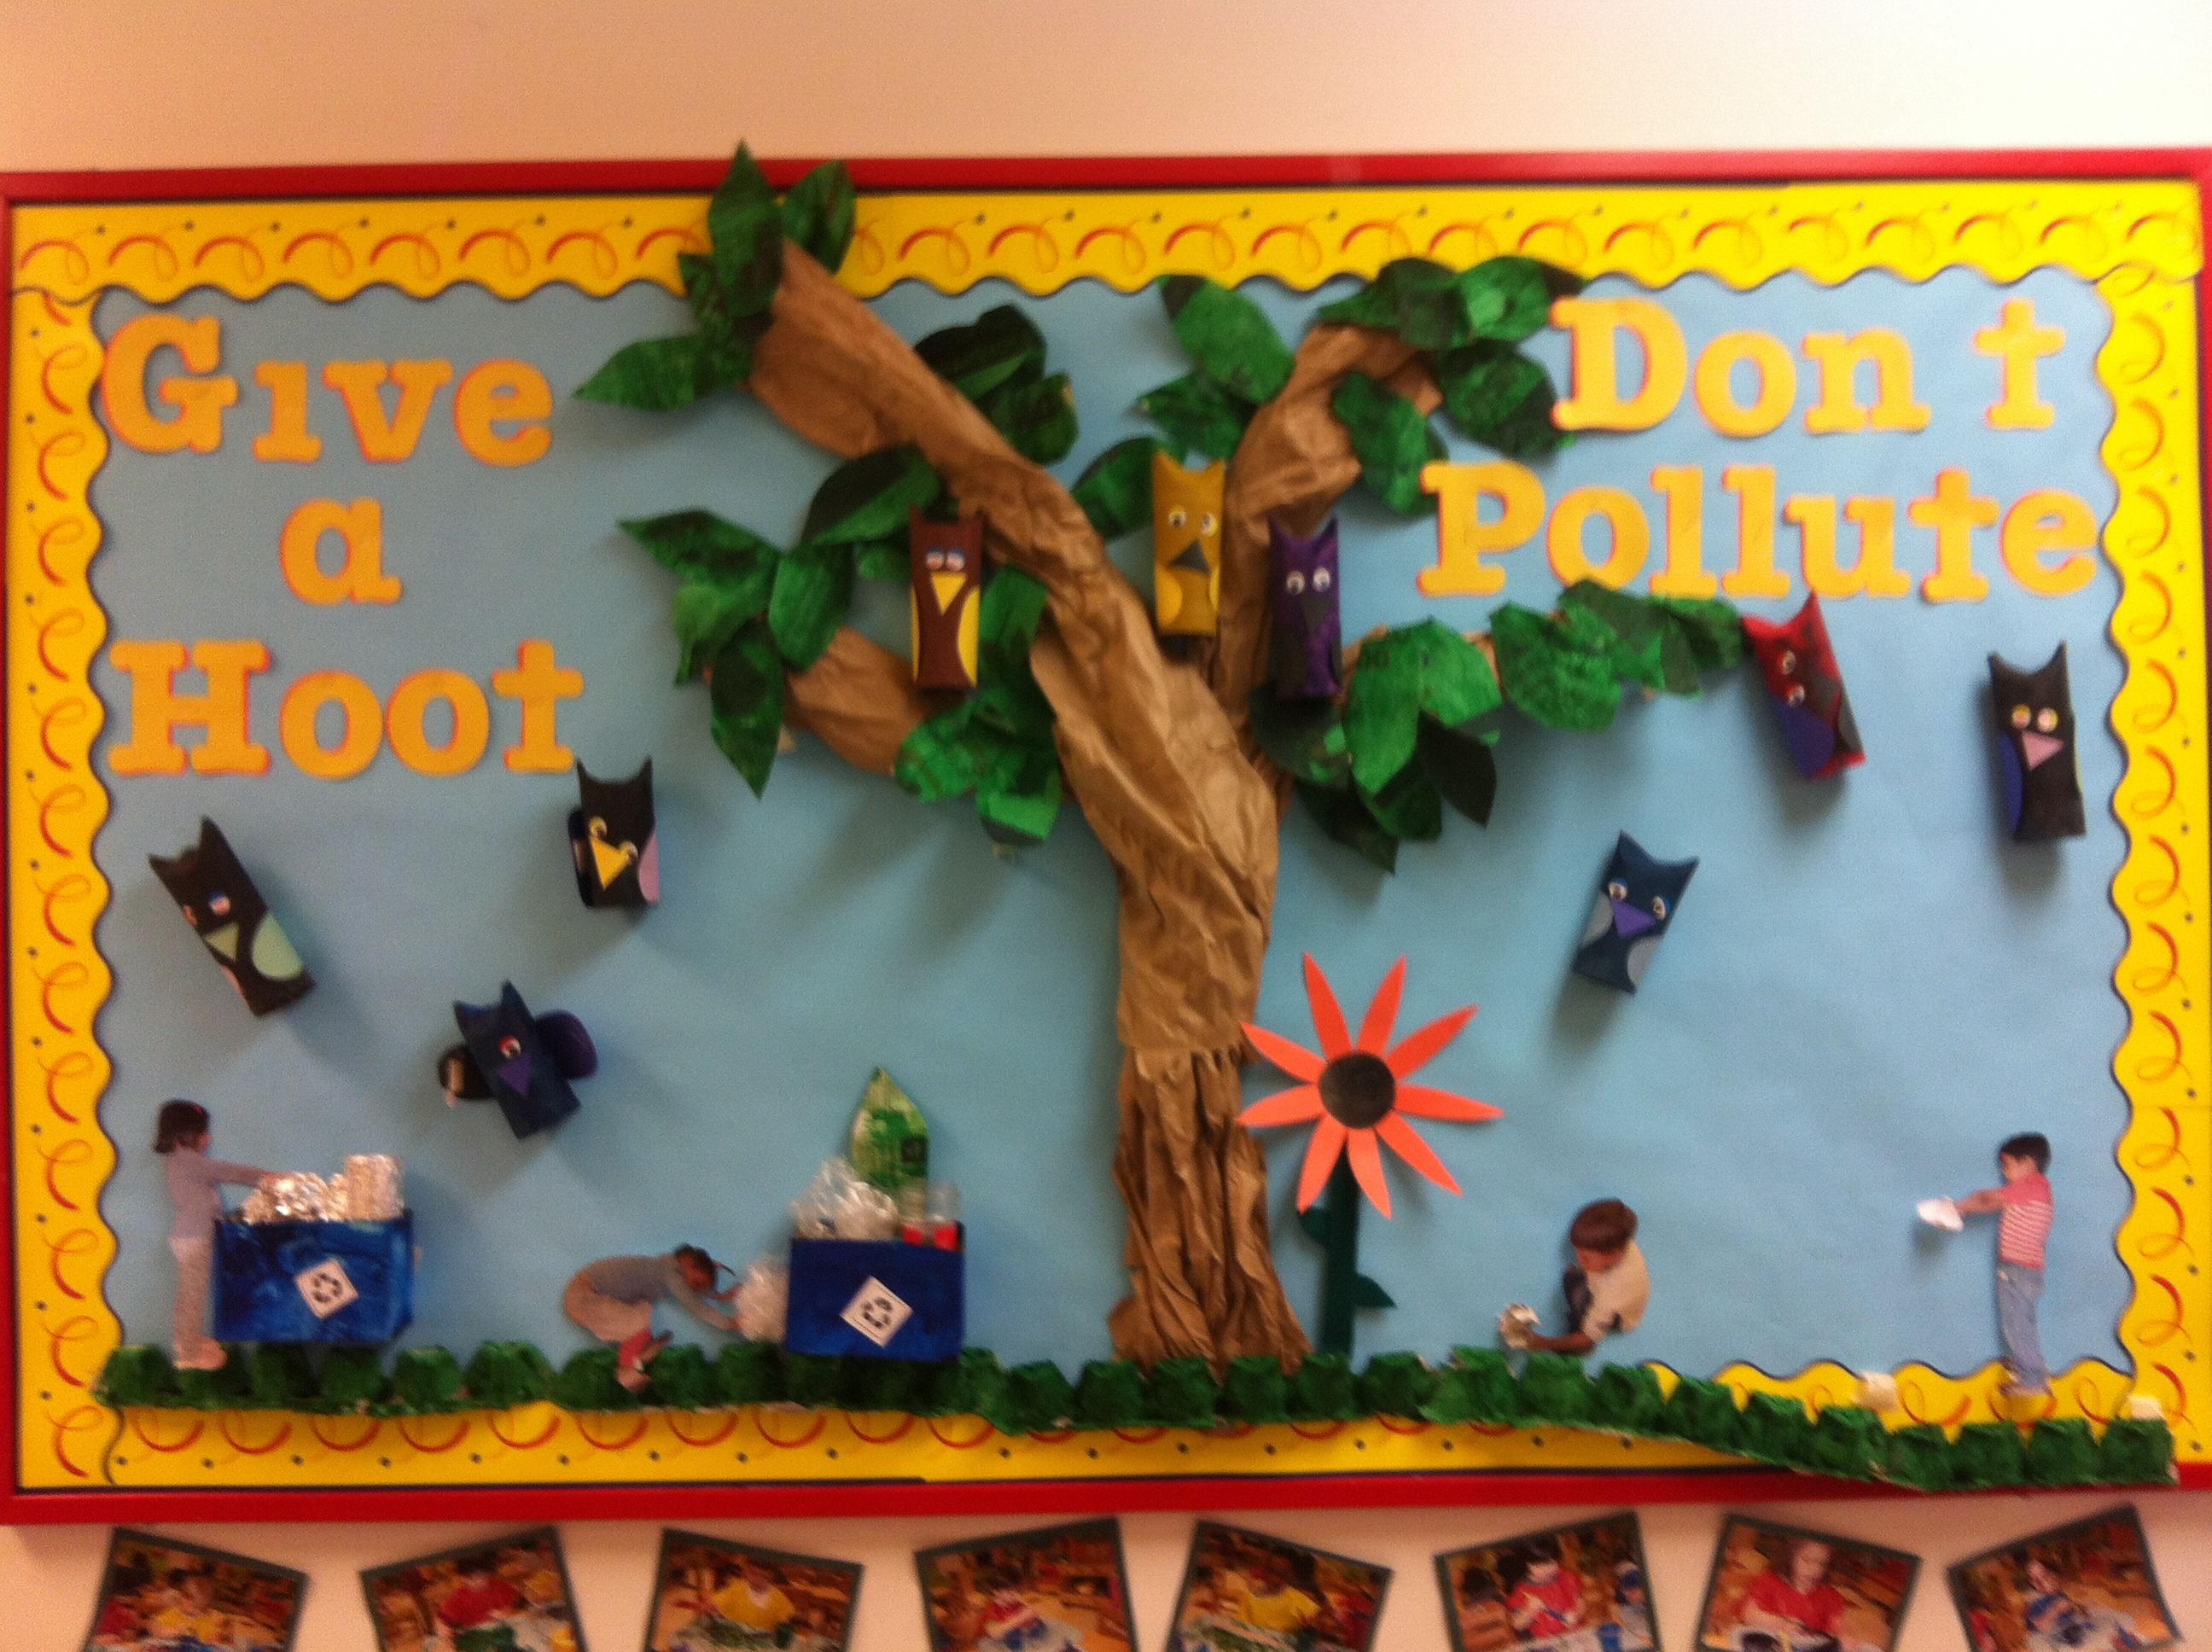 Go green vegetable bulletin board idea myclassroomideas com - Clever Title For Recycling Bulletin Board